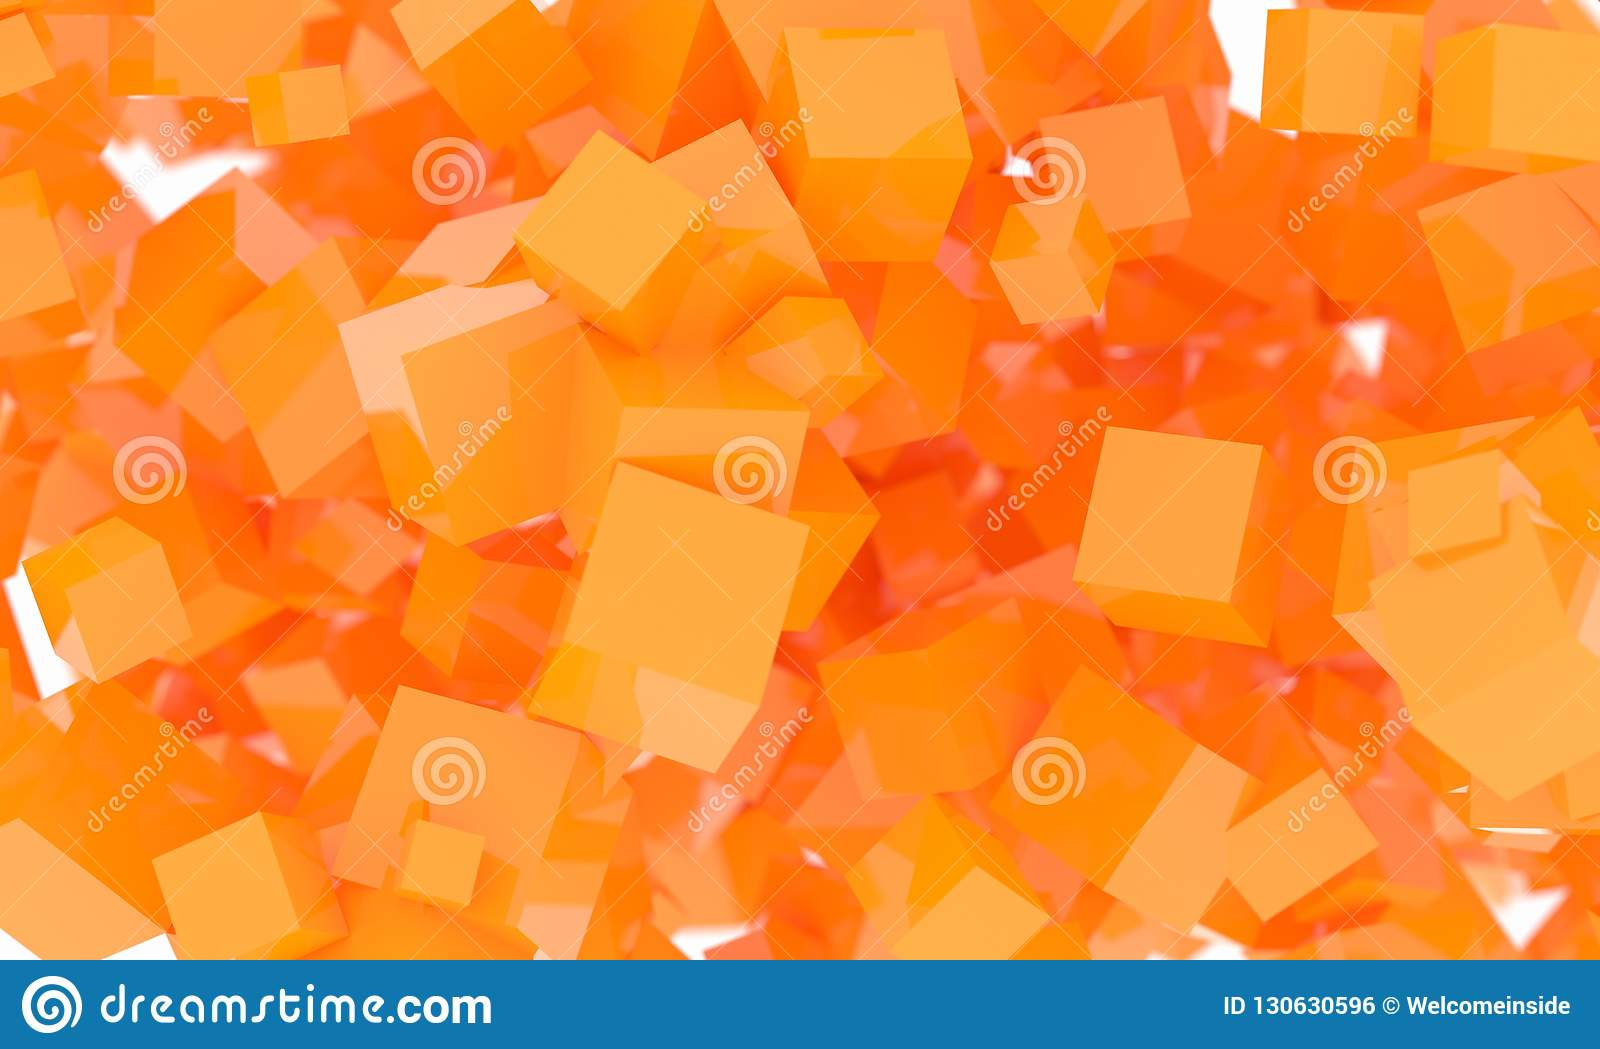 abstract geometric orange cubic background abstract geometric orange cubic background wallpaper web design 130630596